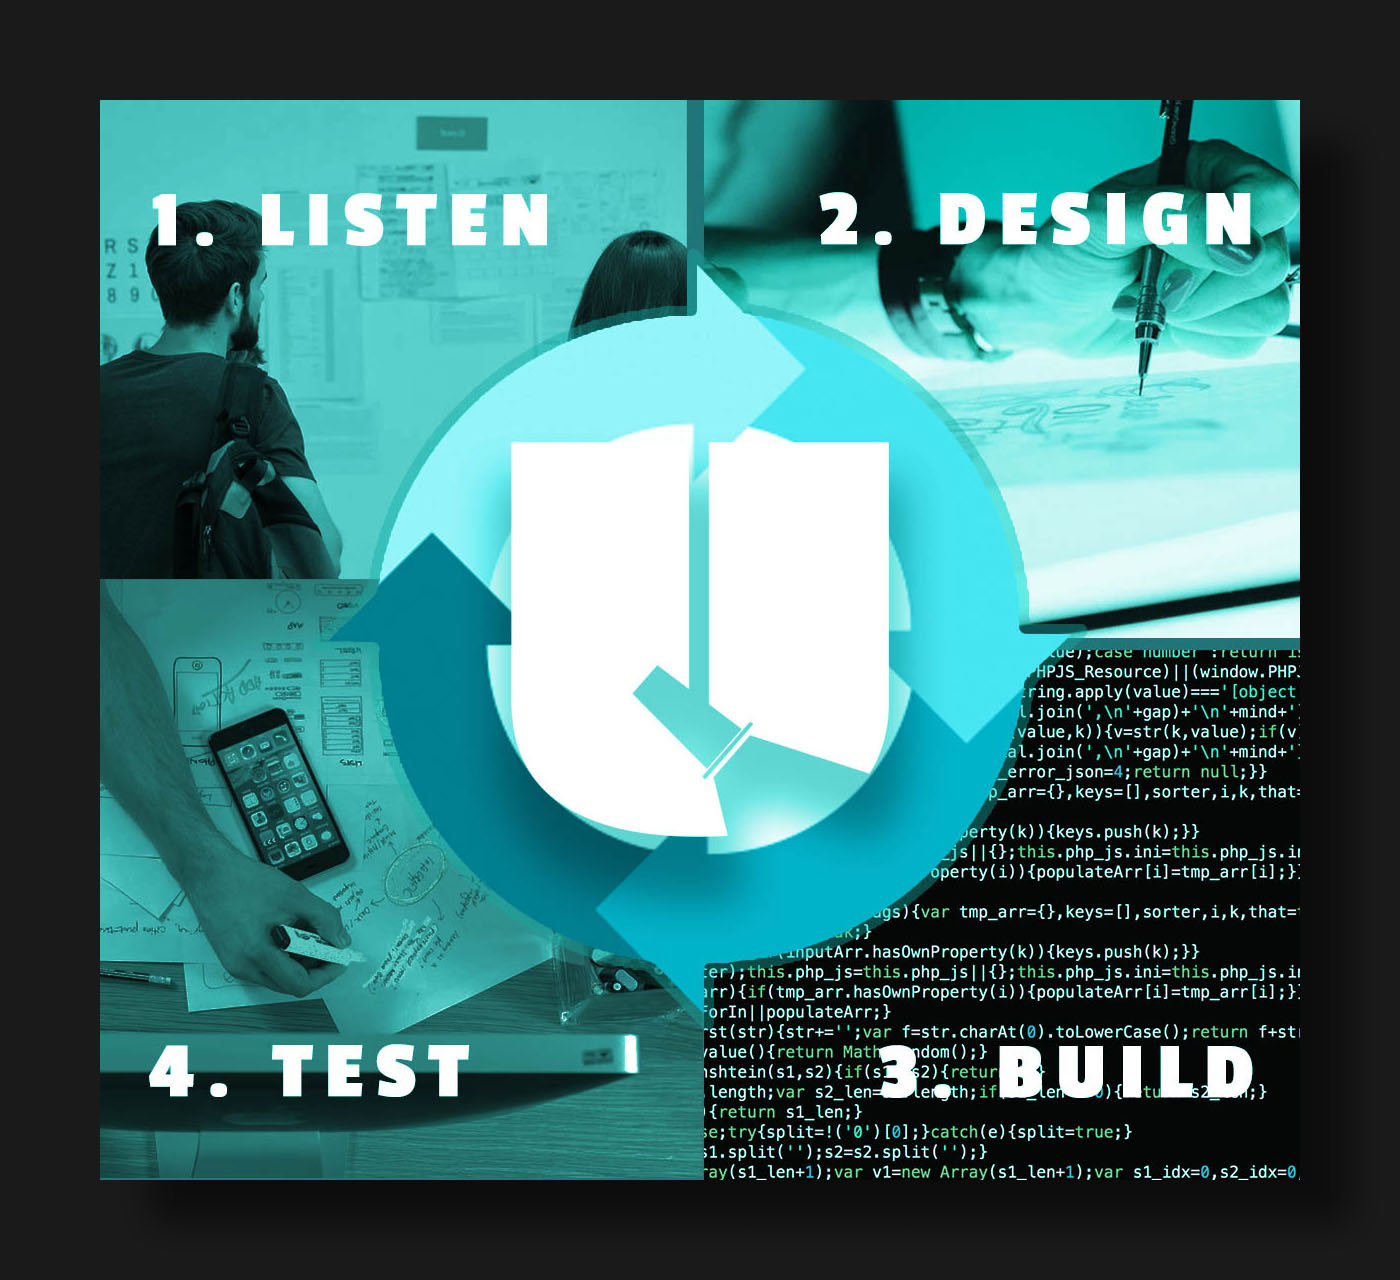 Good Creative Digital Agency Processes go through a cycle of listening, designing, building and testing